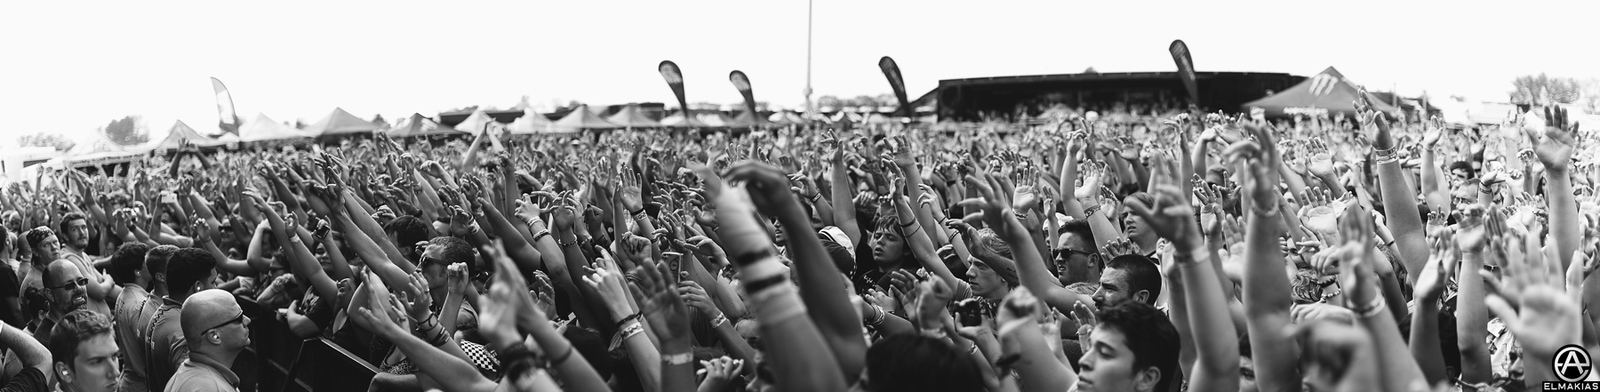 Beartooth fans at Vans Warped Tour 2015 by Adam Elmakias